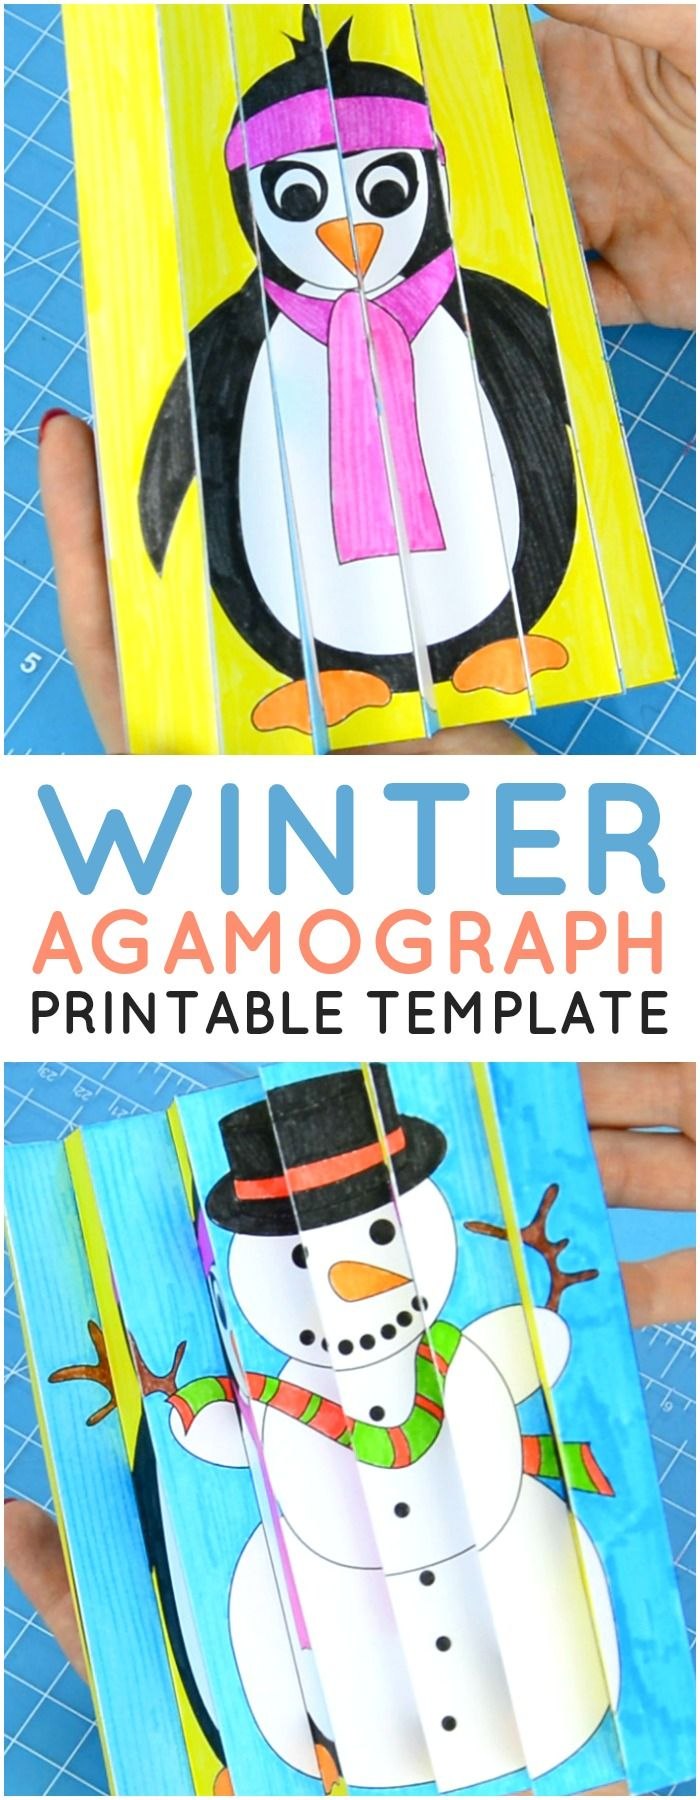 winter agamograph template easy peasy and fun crafts for kids rh pinterest com